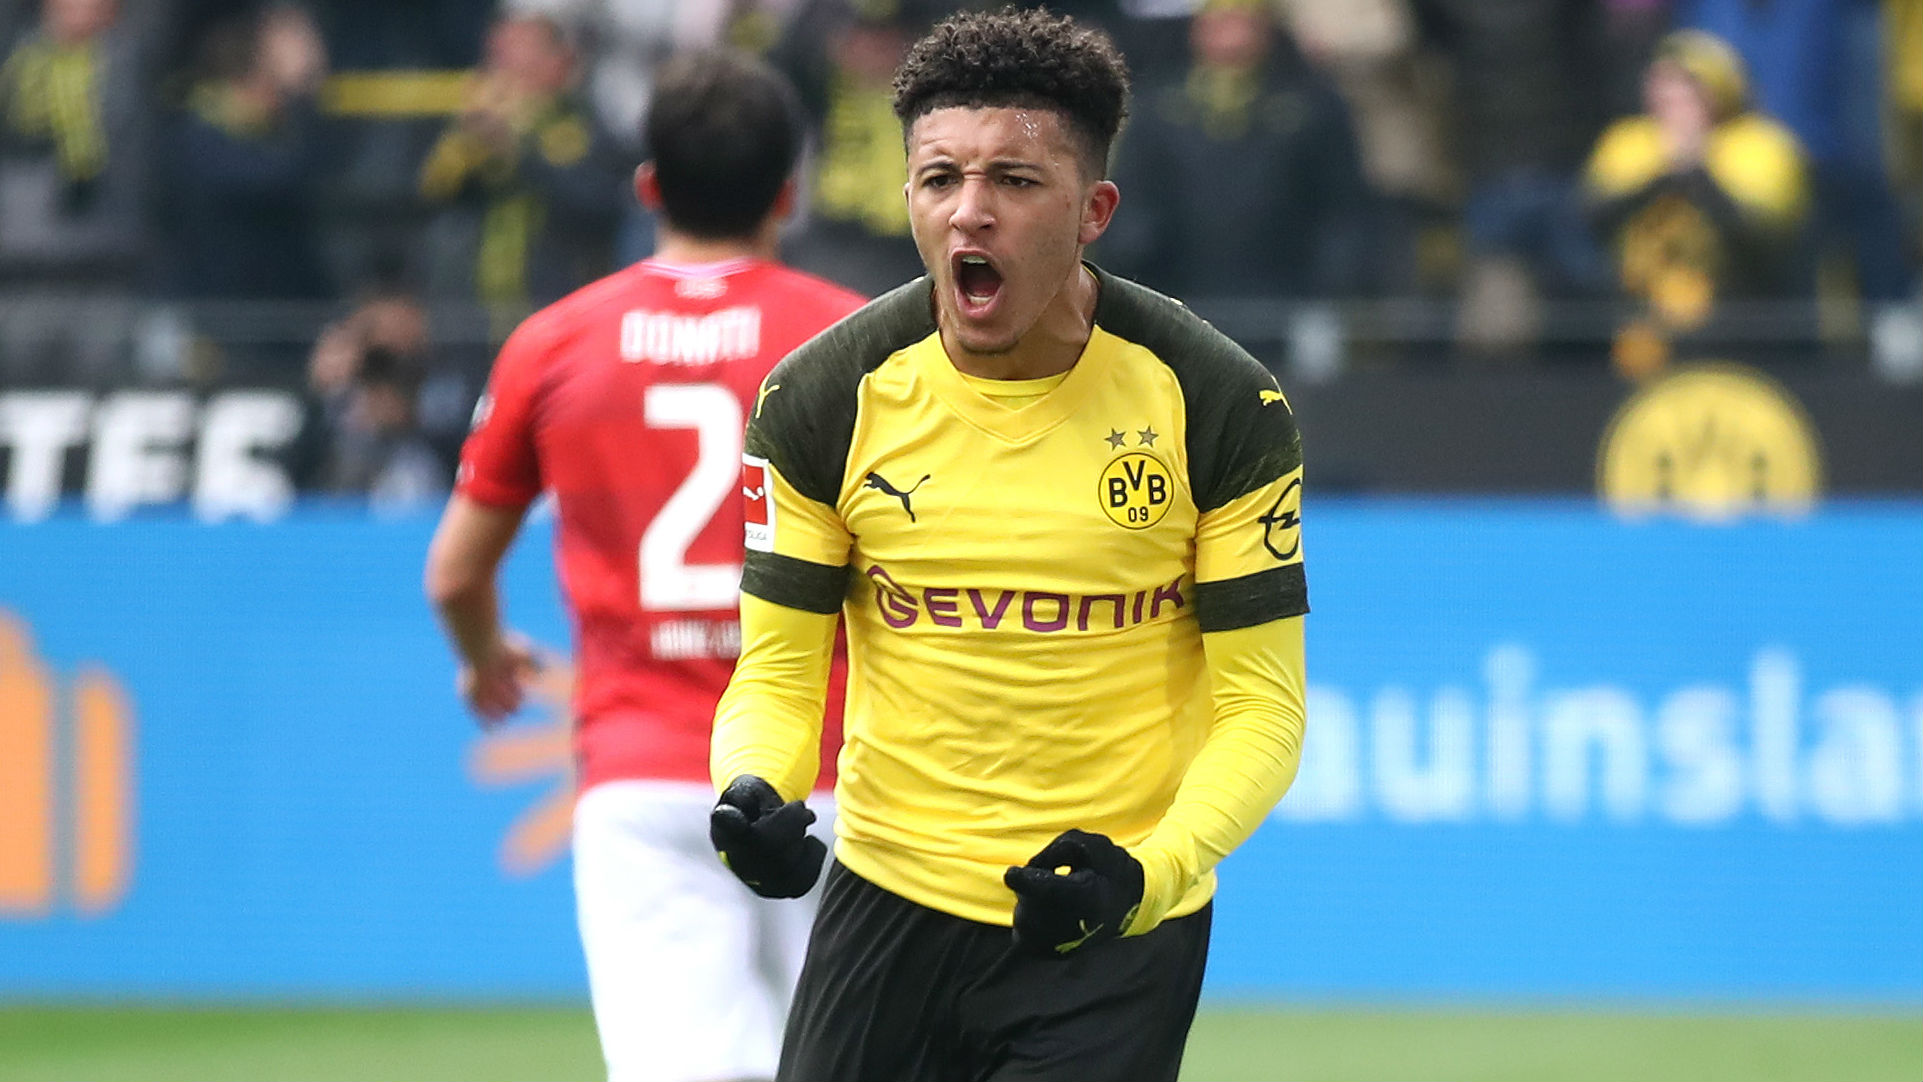 'I'll always love Pep but Dortmund was best for me' - Sancho opens up on Man City exit